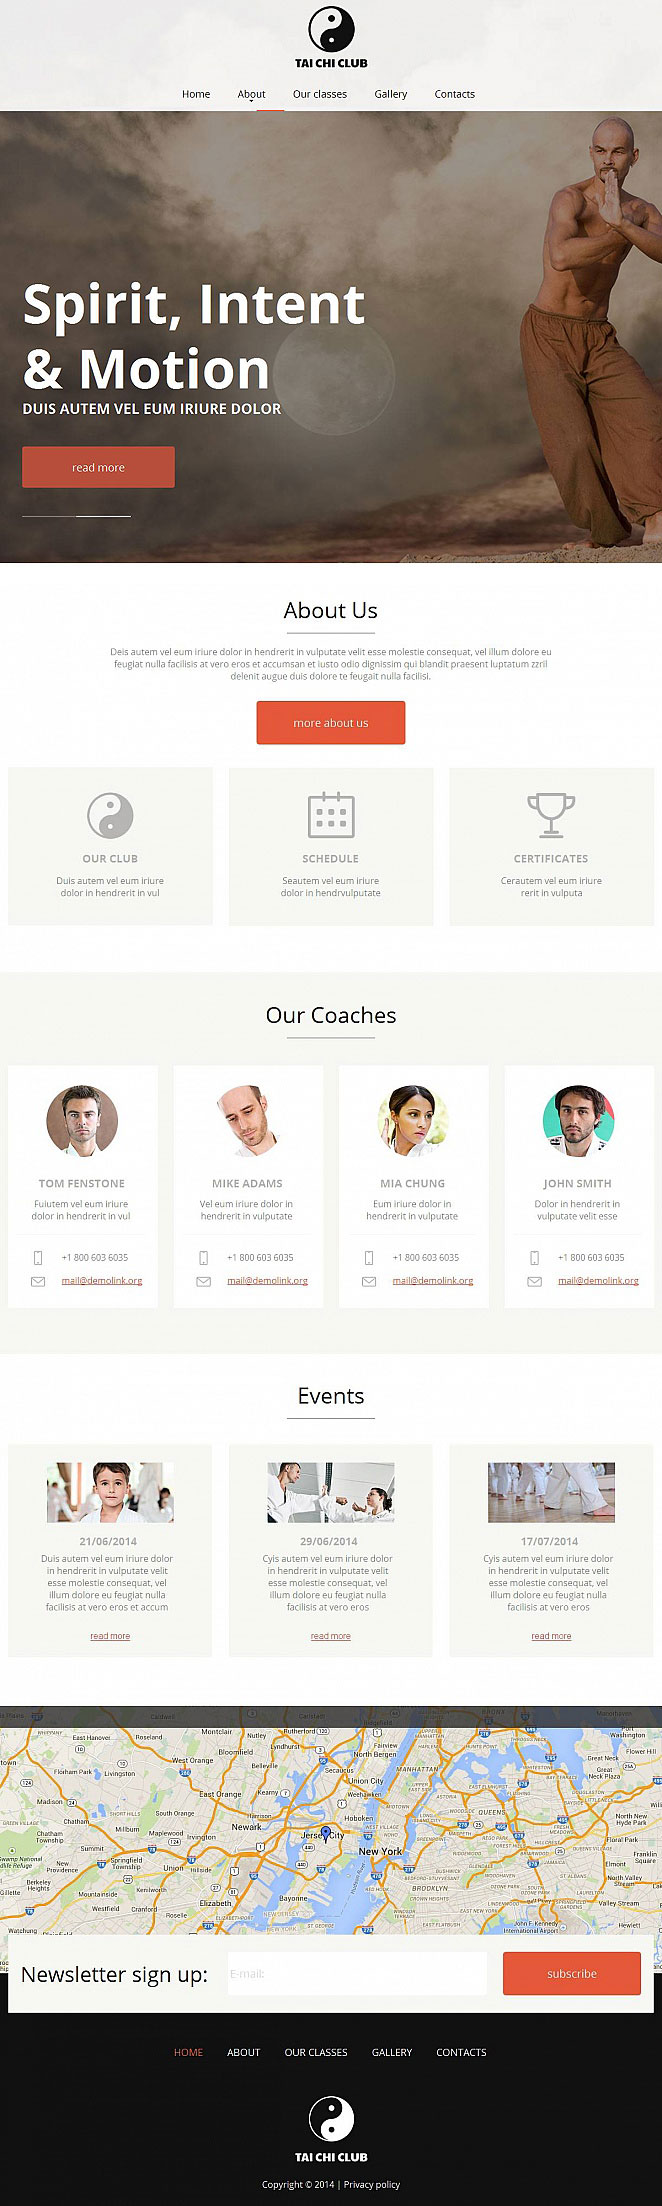 Tai Chi Website Template with Minimalist Design - image